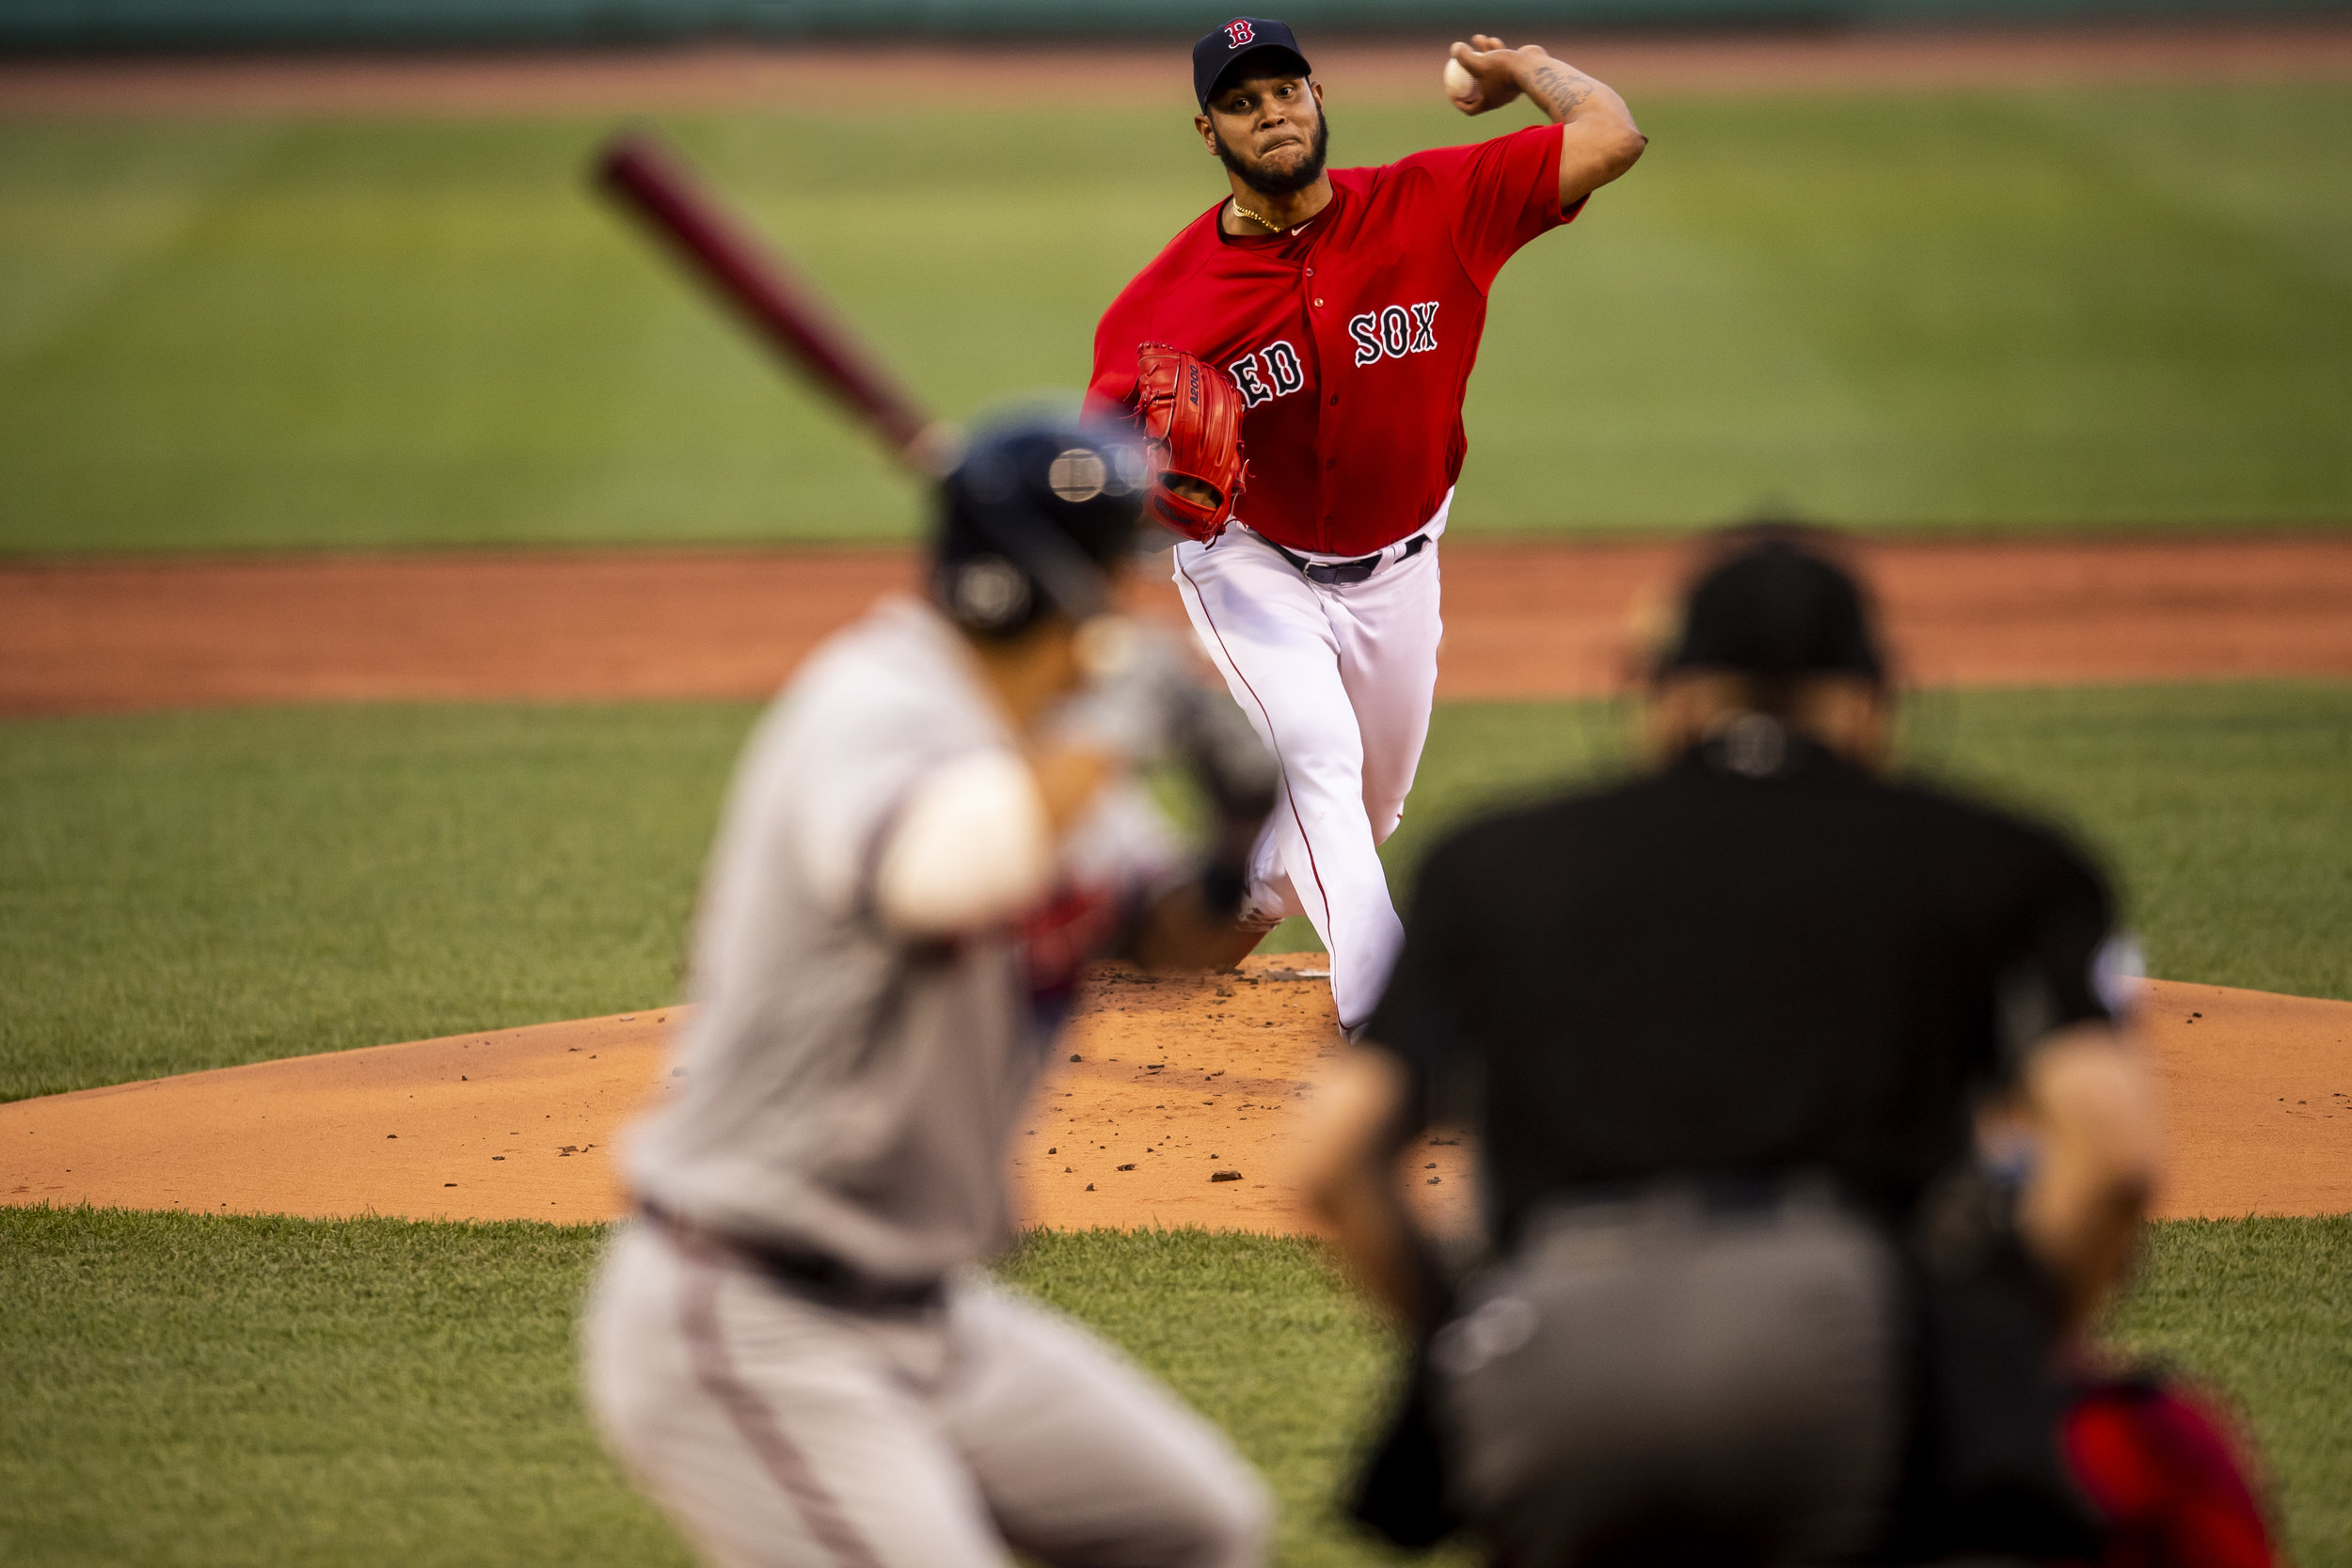 May 25, 2018, Boston, MA: Boston Red Sox pitcher Eduardo Rodriguez delivers a pitch in the first inning as the Boston Red Sox face the Atlanta Braves at Fenway Park in Boston, Massachusetts on Friday, May 25, 2018. (Photo by Matthew Thomas/Boston Red Sox)